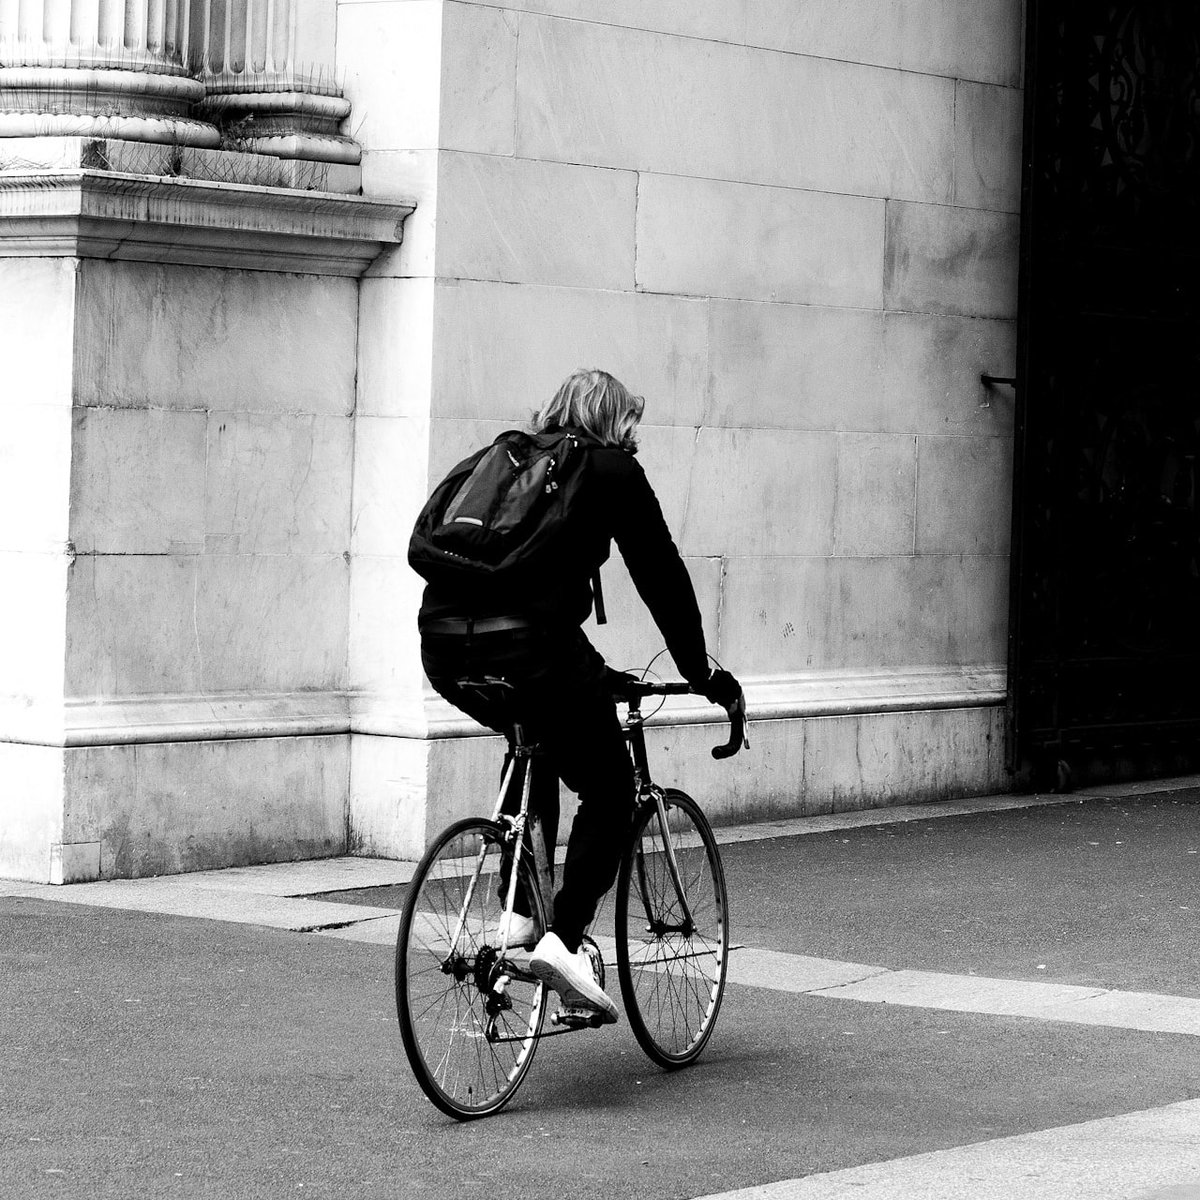 Cycle life...  All about black and white  #blackandwhitephoto #photography #streets pic.twitter.com/l9NlOy8V08